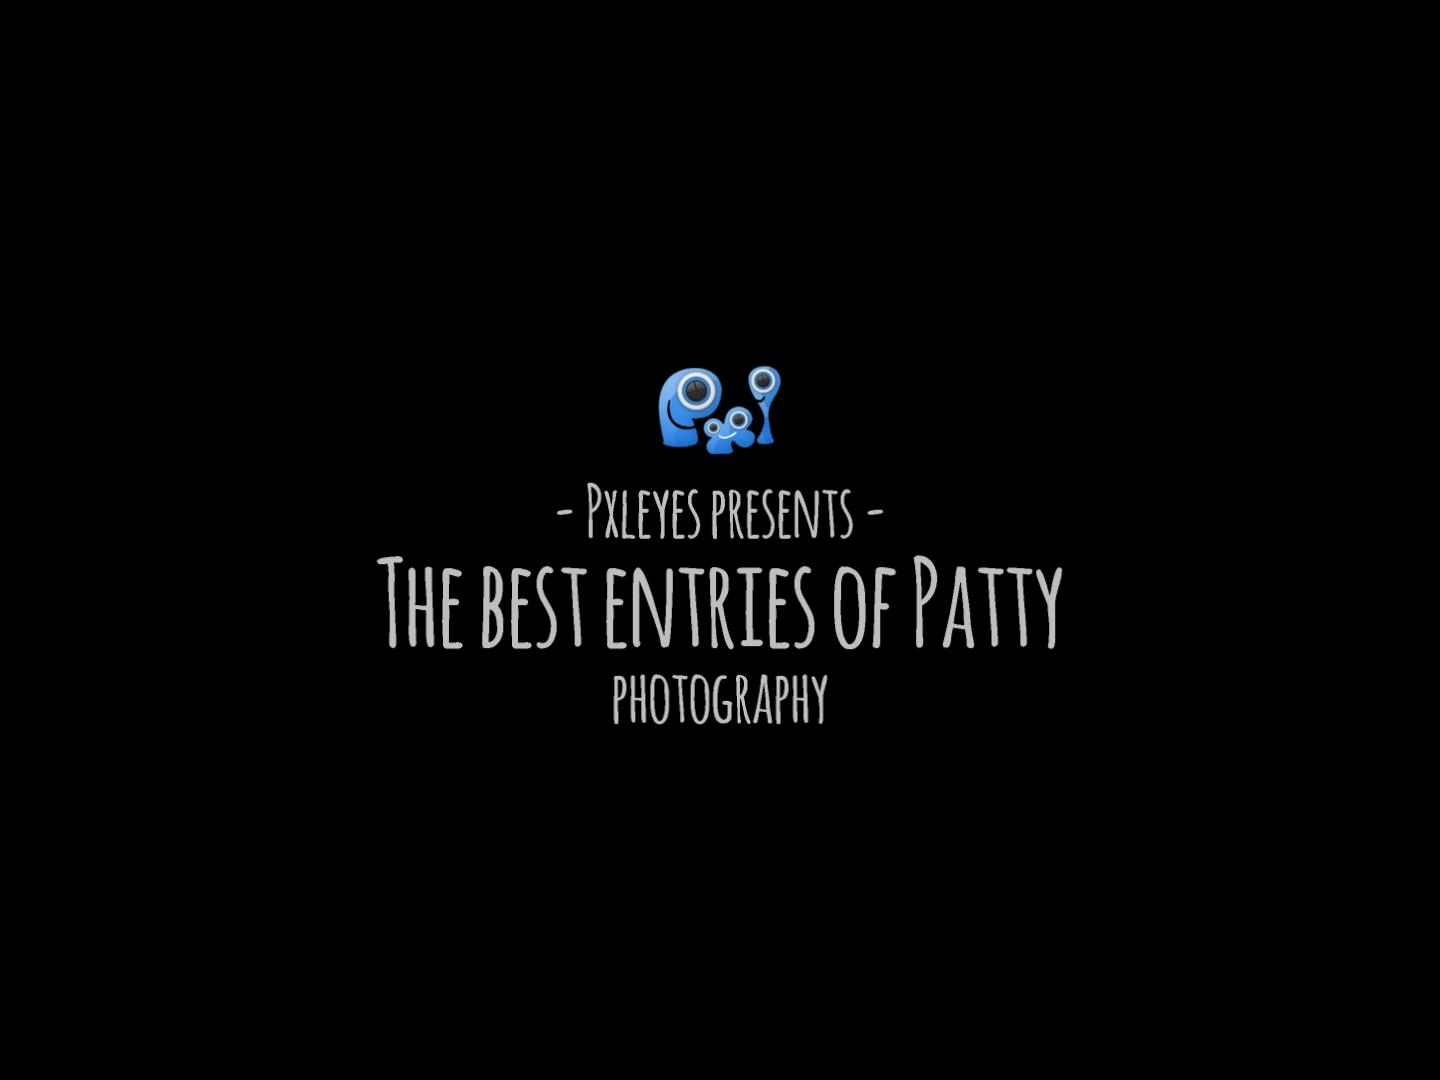 The best entries by Patty